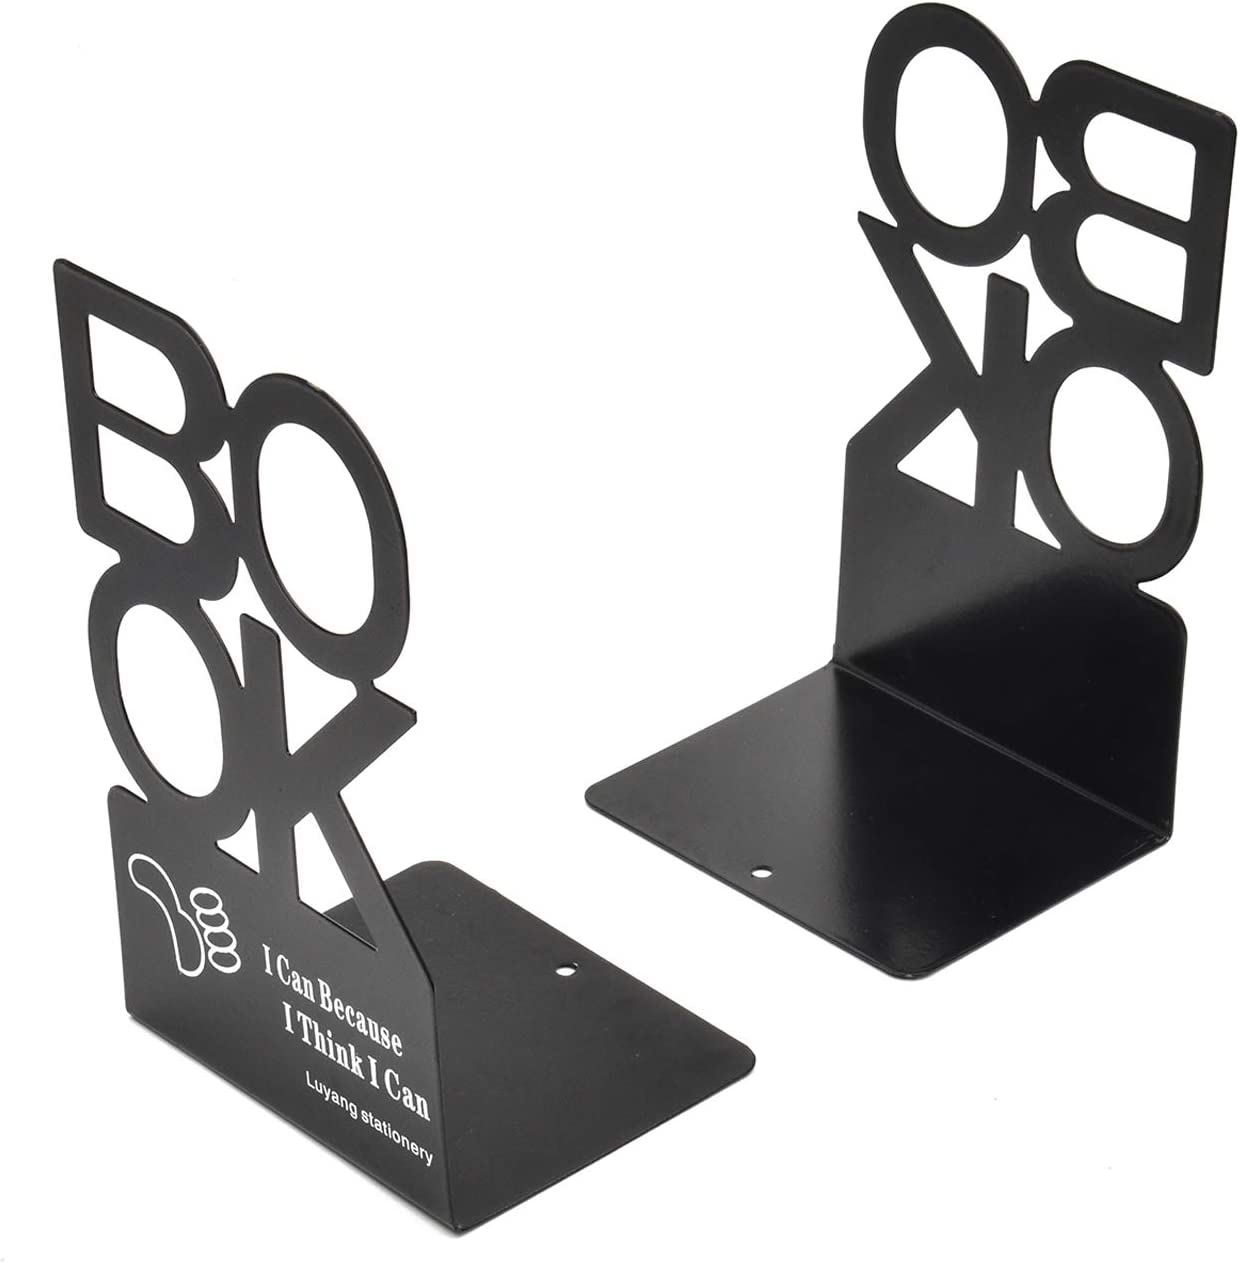 Book Ends Metal Support San Diego Mall Organizer Nonskid Booken Stand trend rank